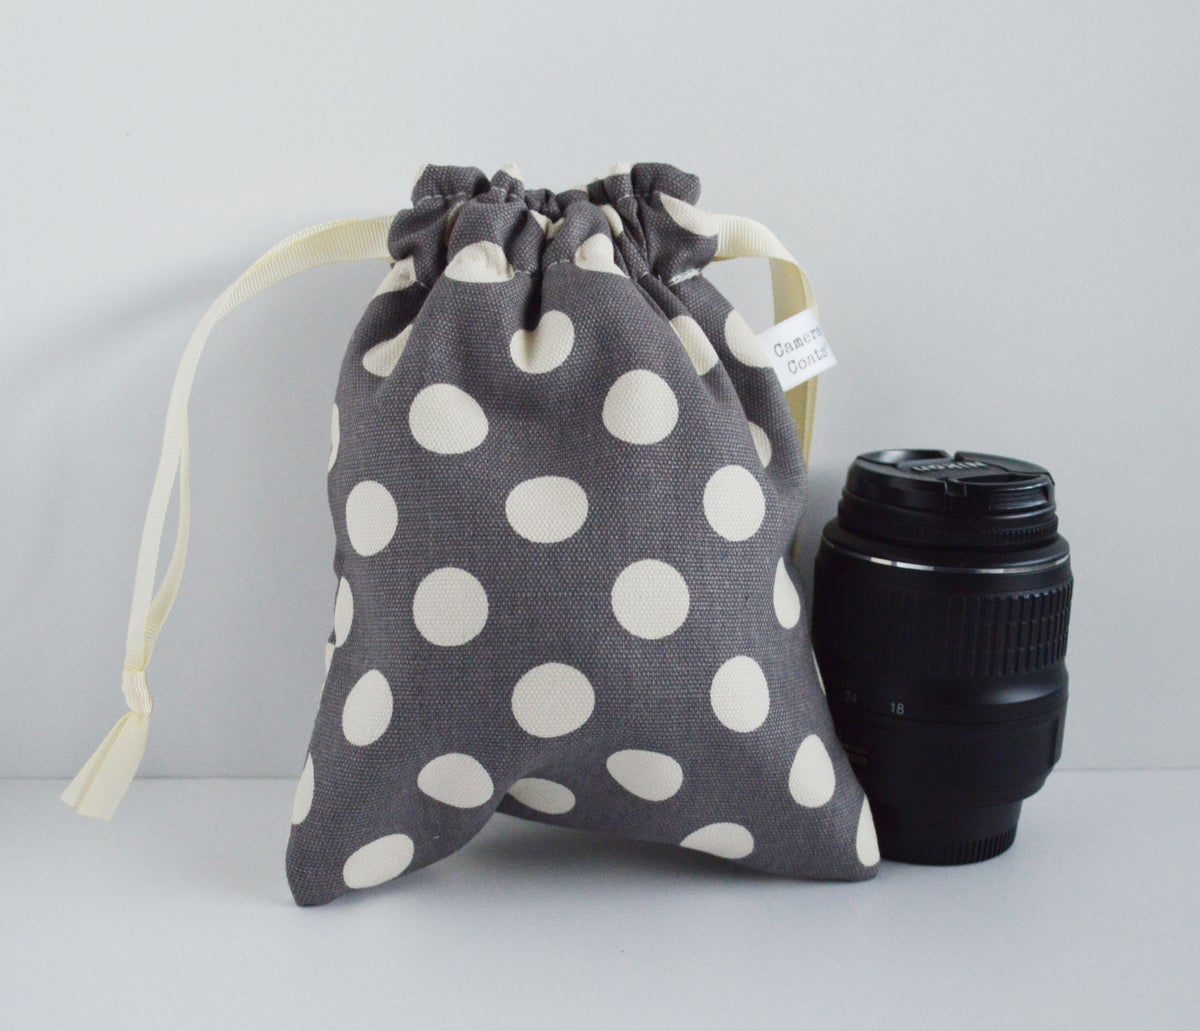 Image of Best Camera Bag of 2019 PLUS FREE matching strap | Water Repellent Gray Polka Dot